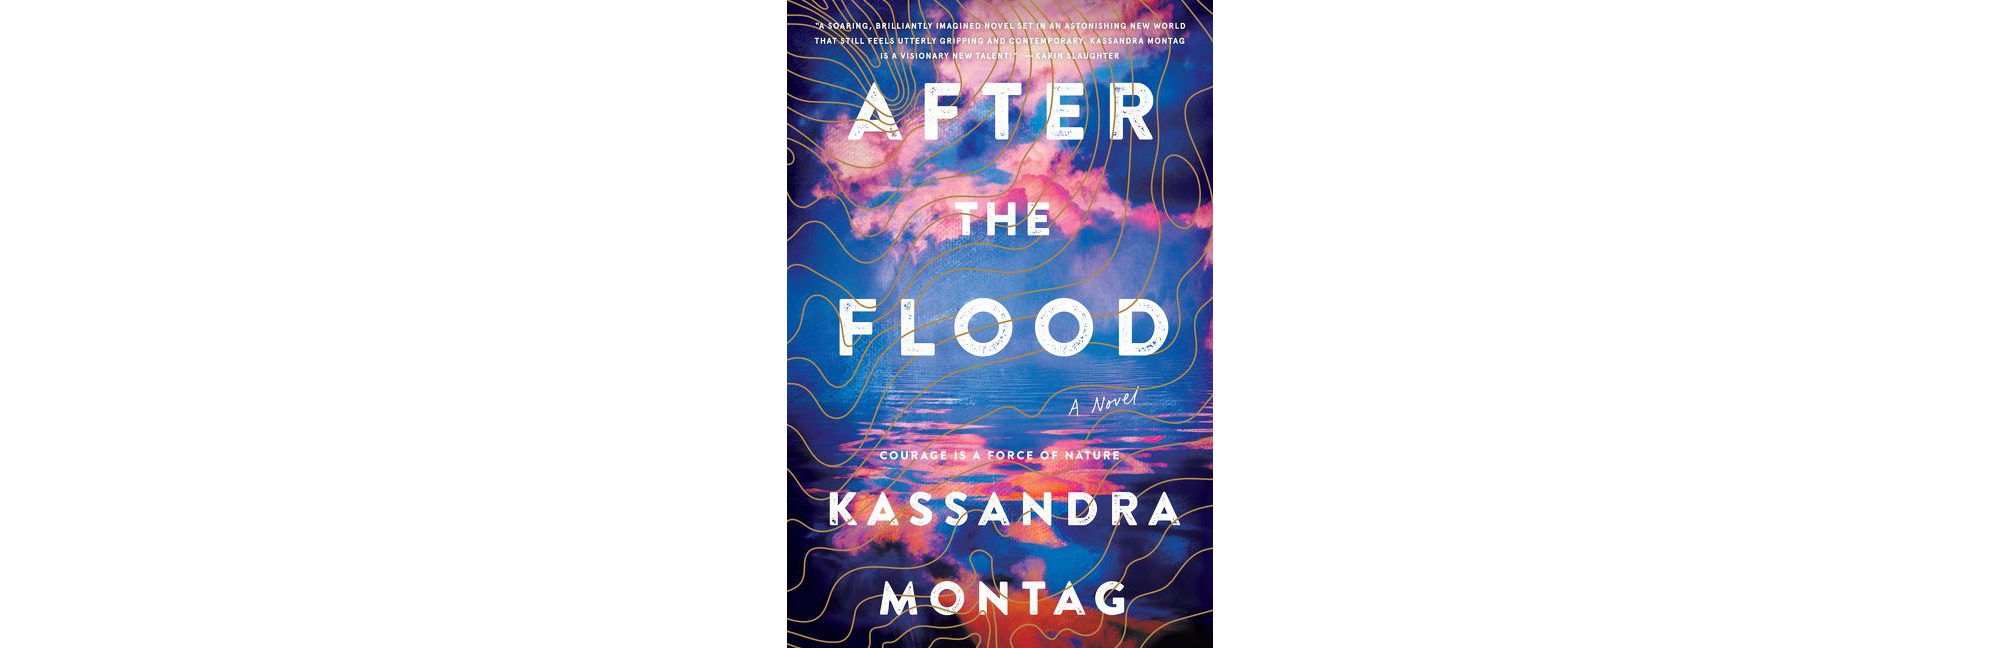 After the Flood, by Kassandra Montag